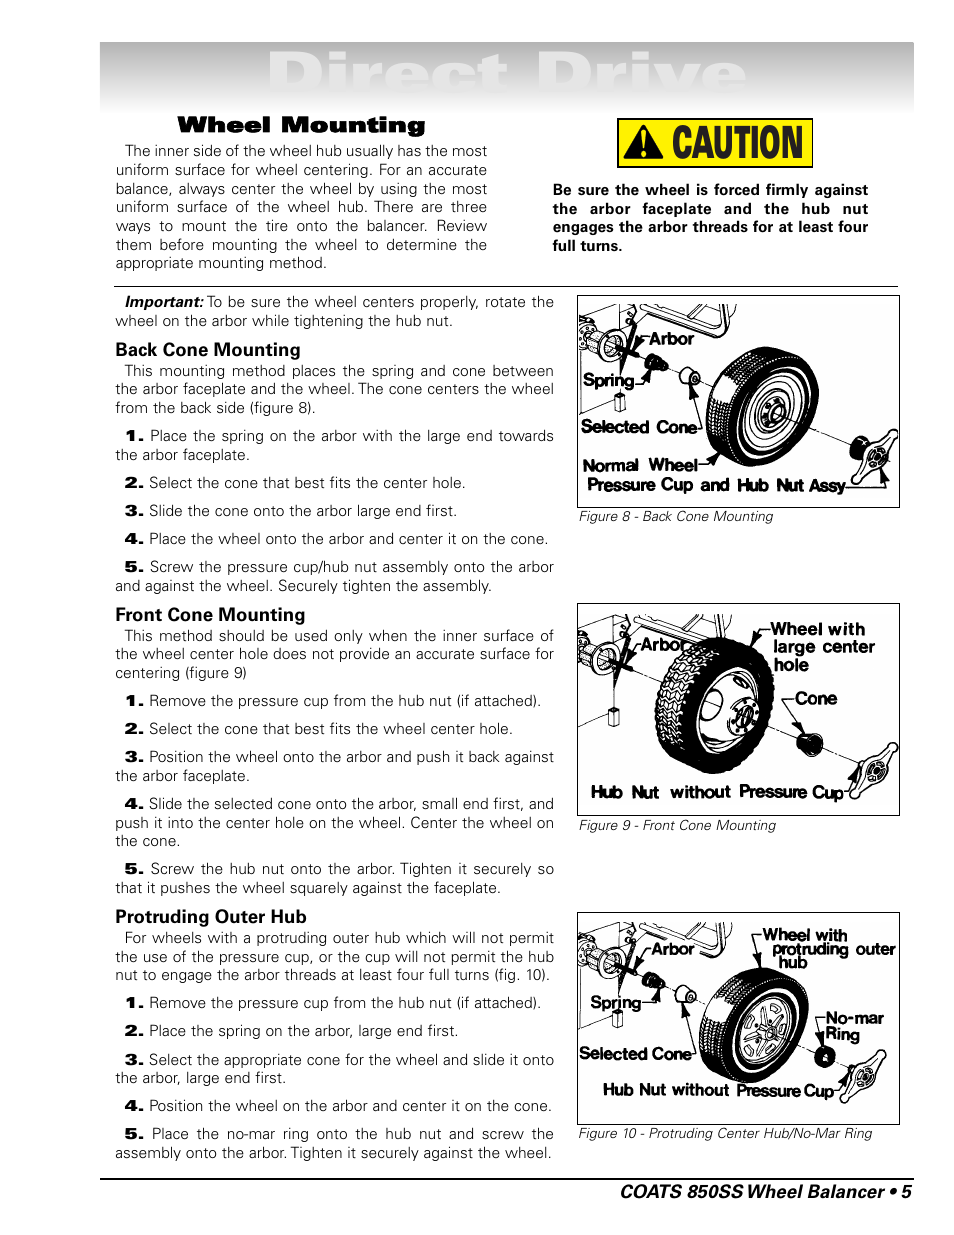 Direct drive, Caution, Wheel mounting | COATS 850 Solid State Wheel Balancer  User Manual